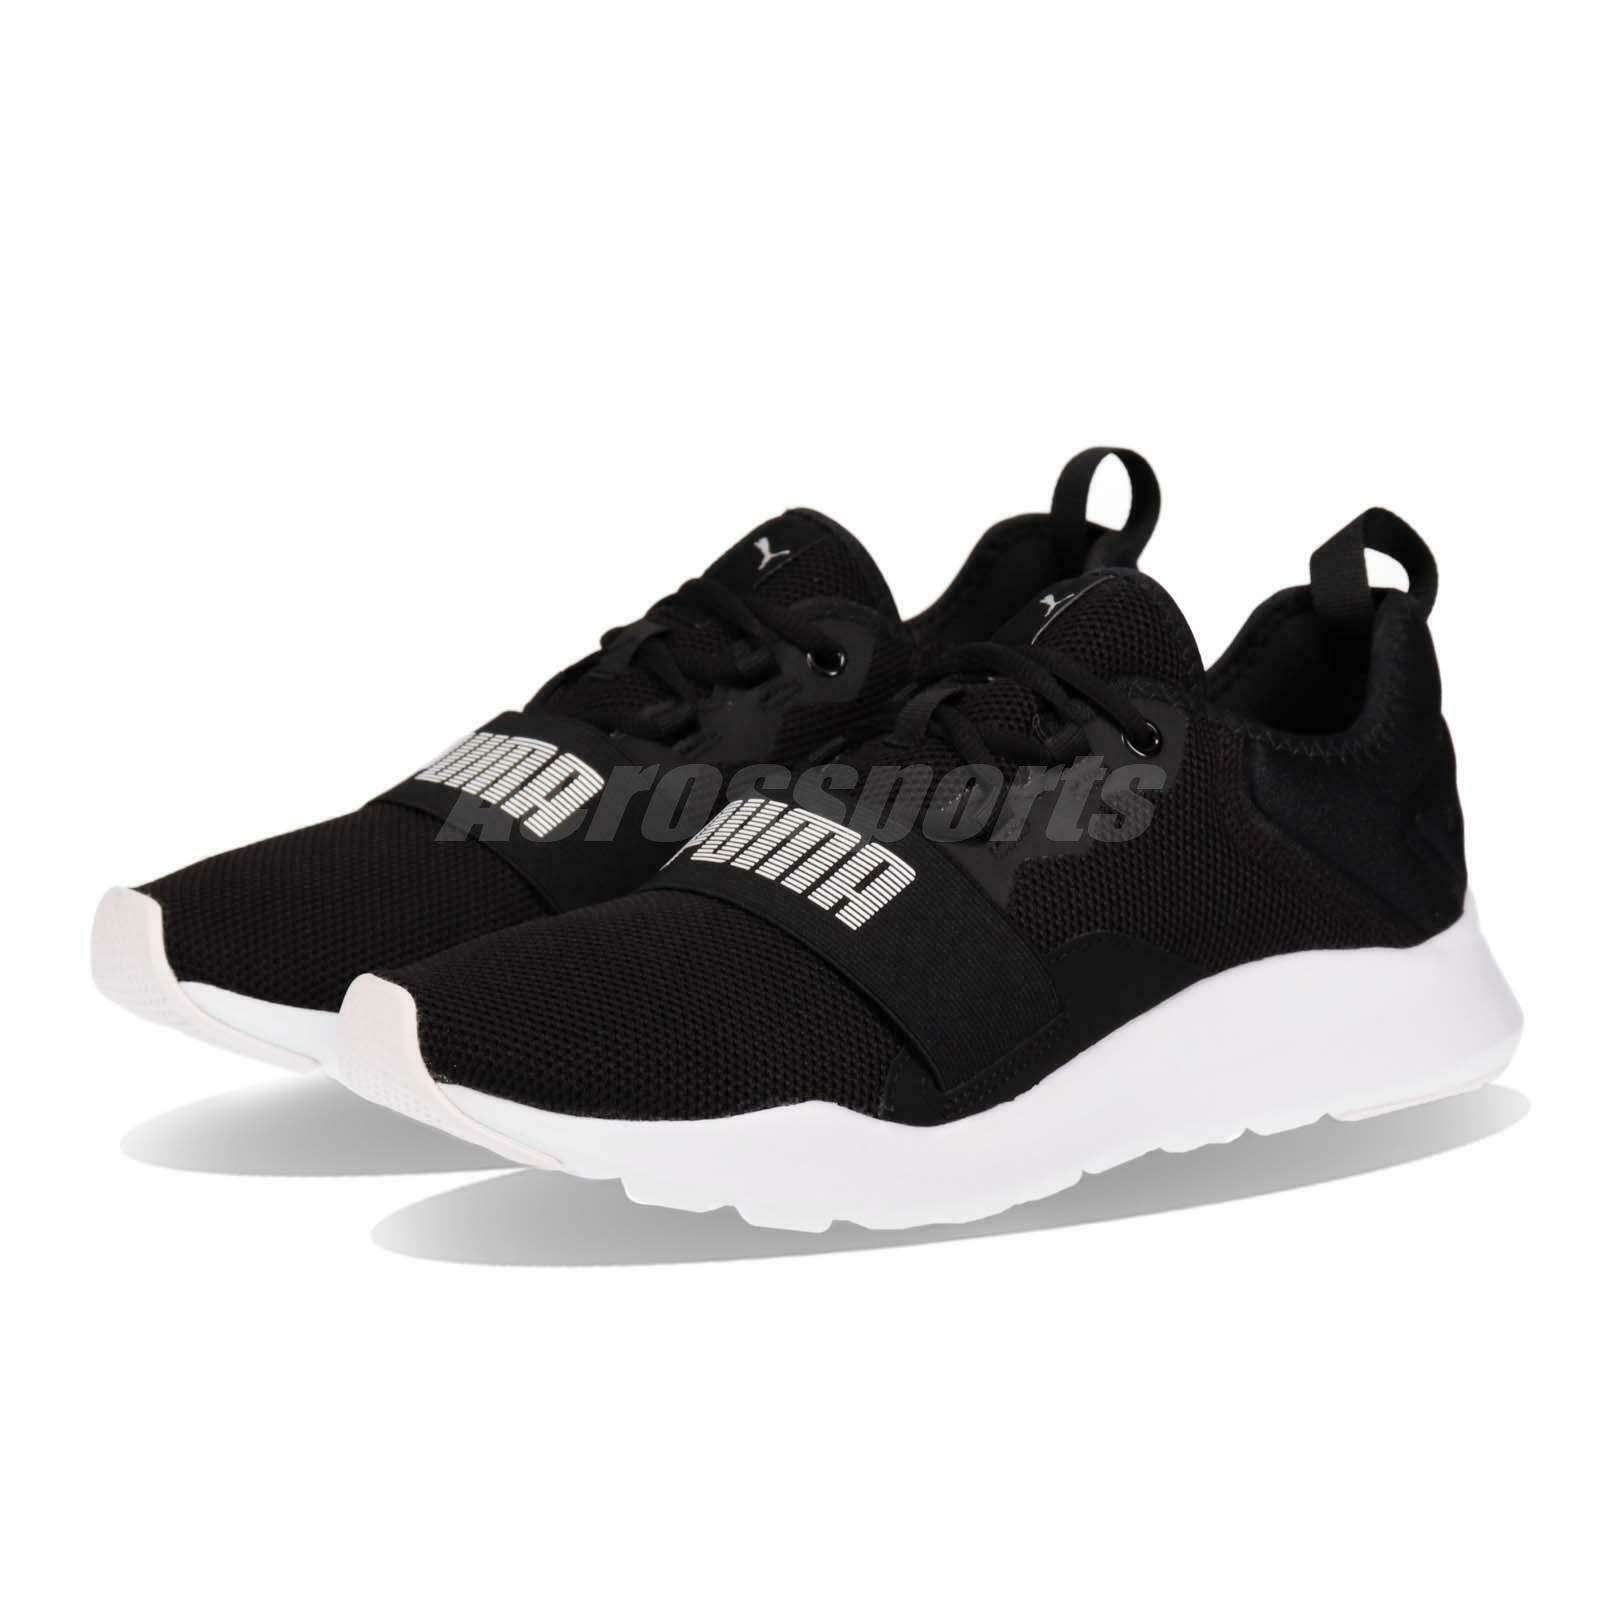 Puma Wired Pro Black White Men Women Running Casual shoes Sneakers 369126-01